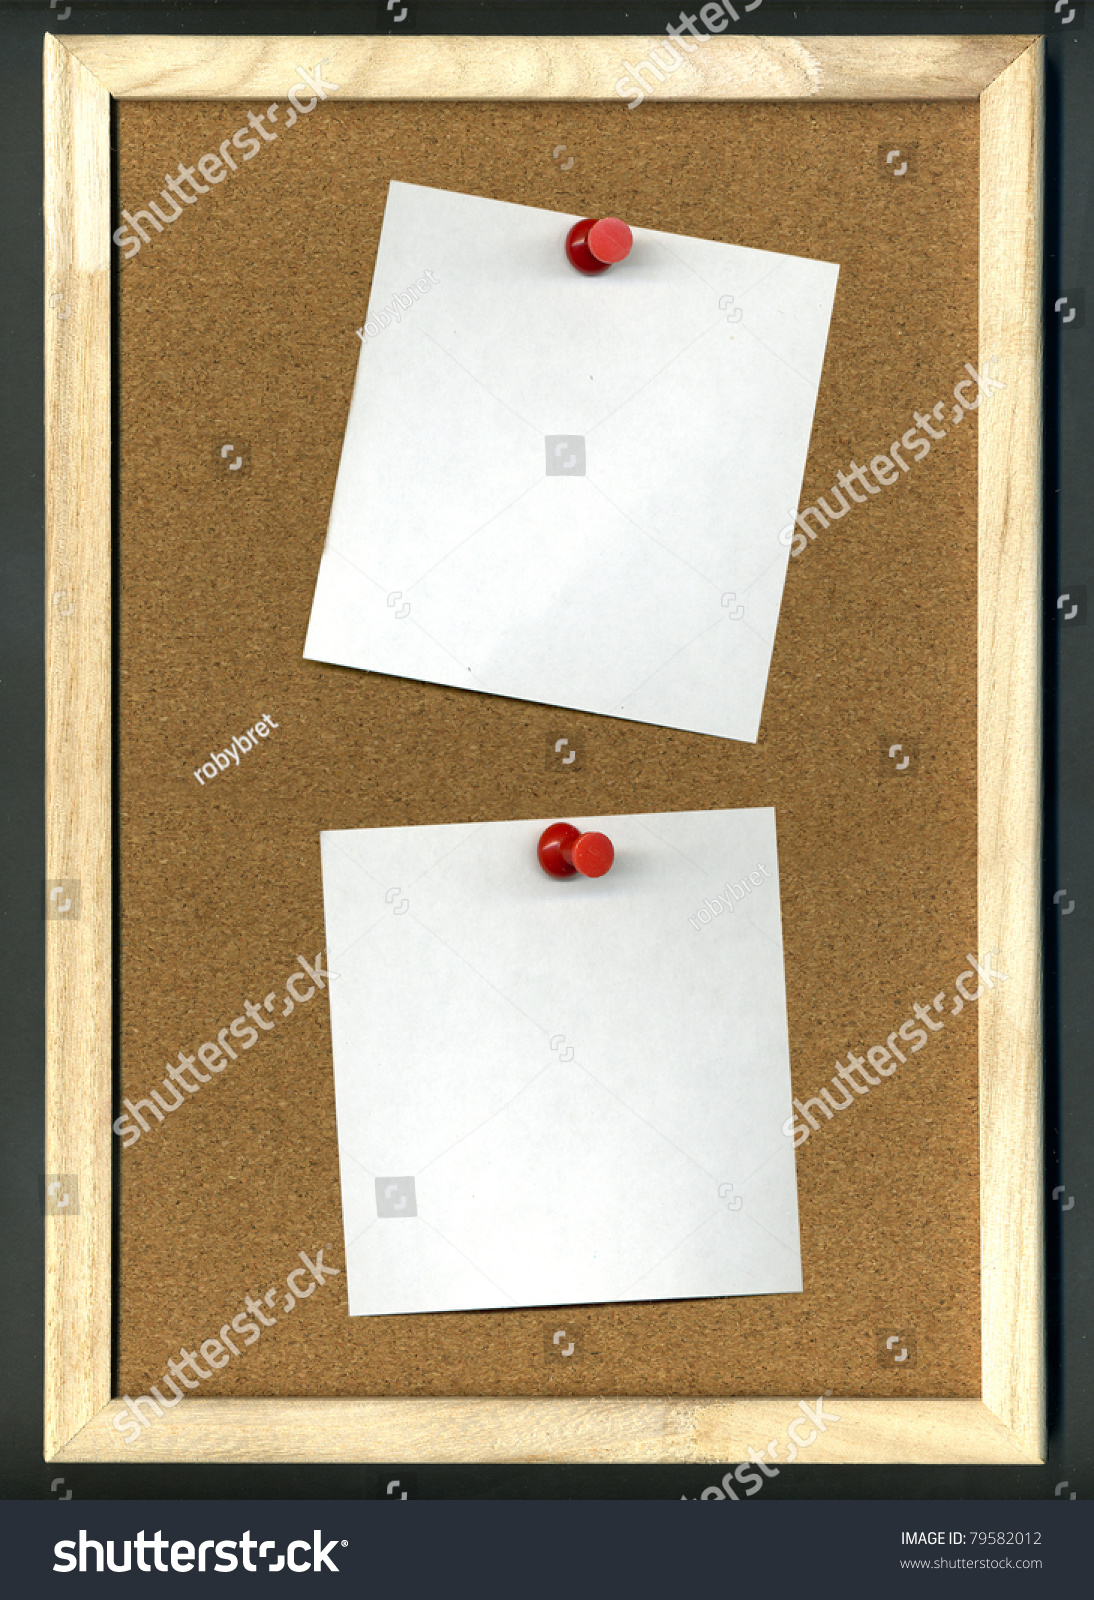 Poster board with sticky surface